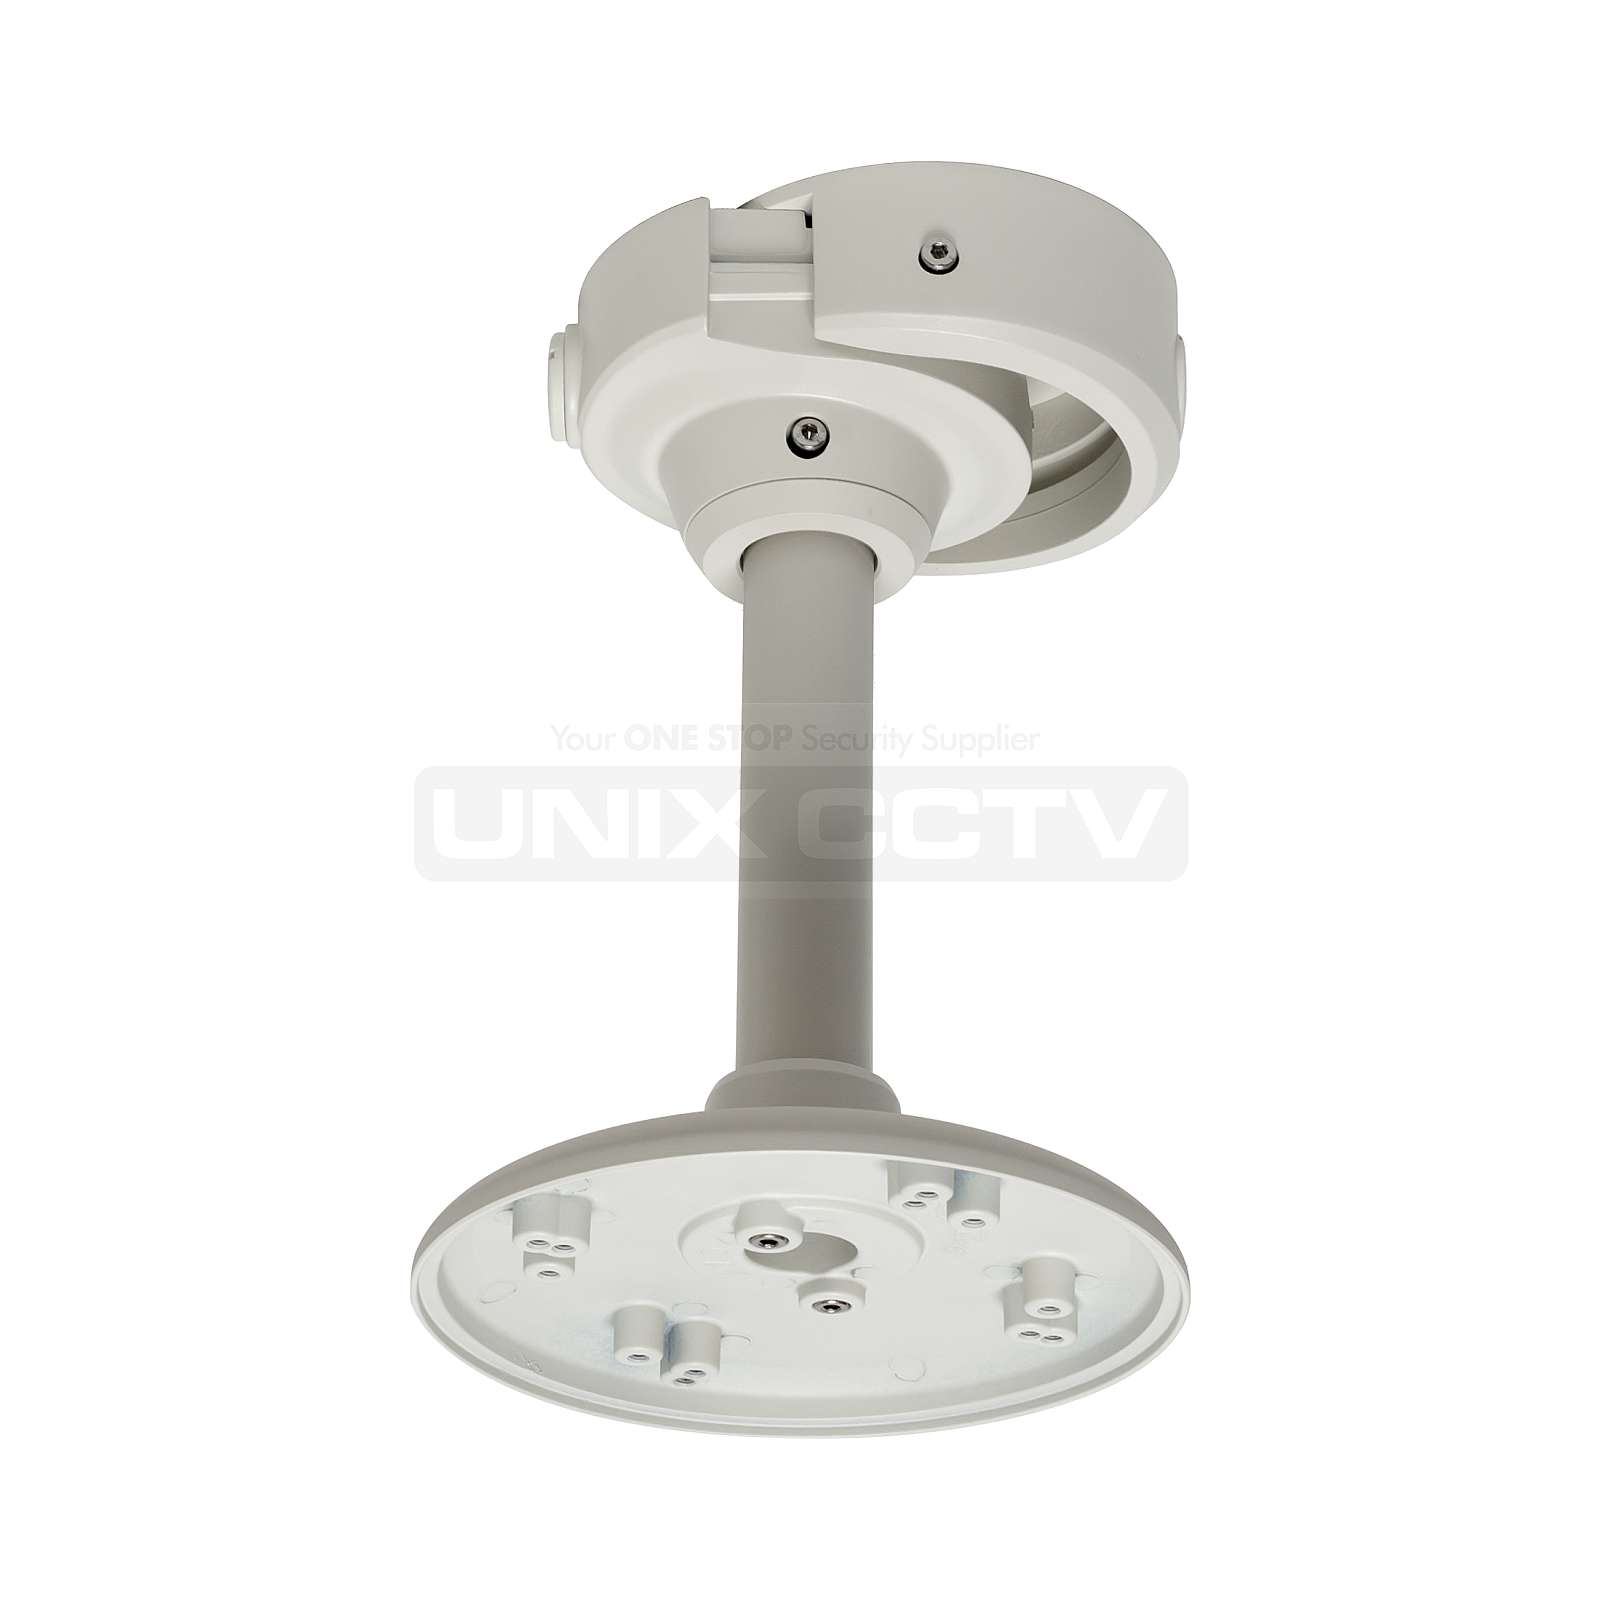 Slide In Metal Ceiling Mount For Dome Camera Unix Cctv